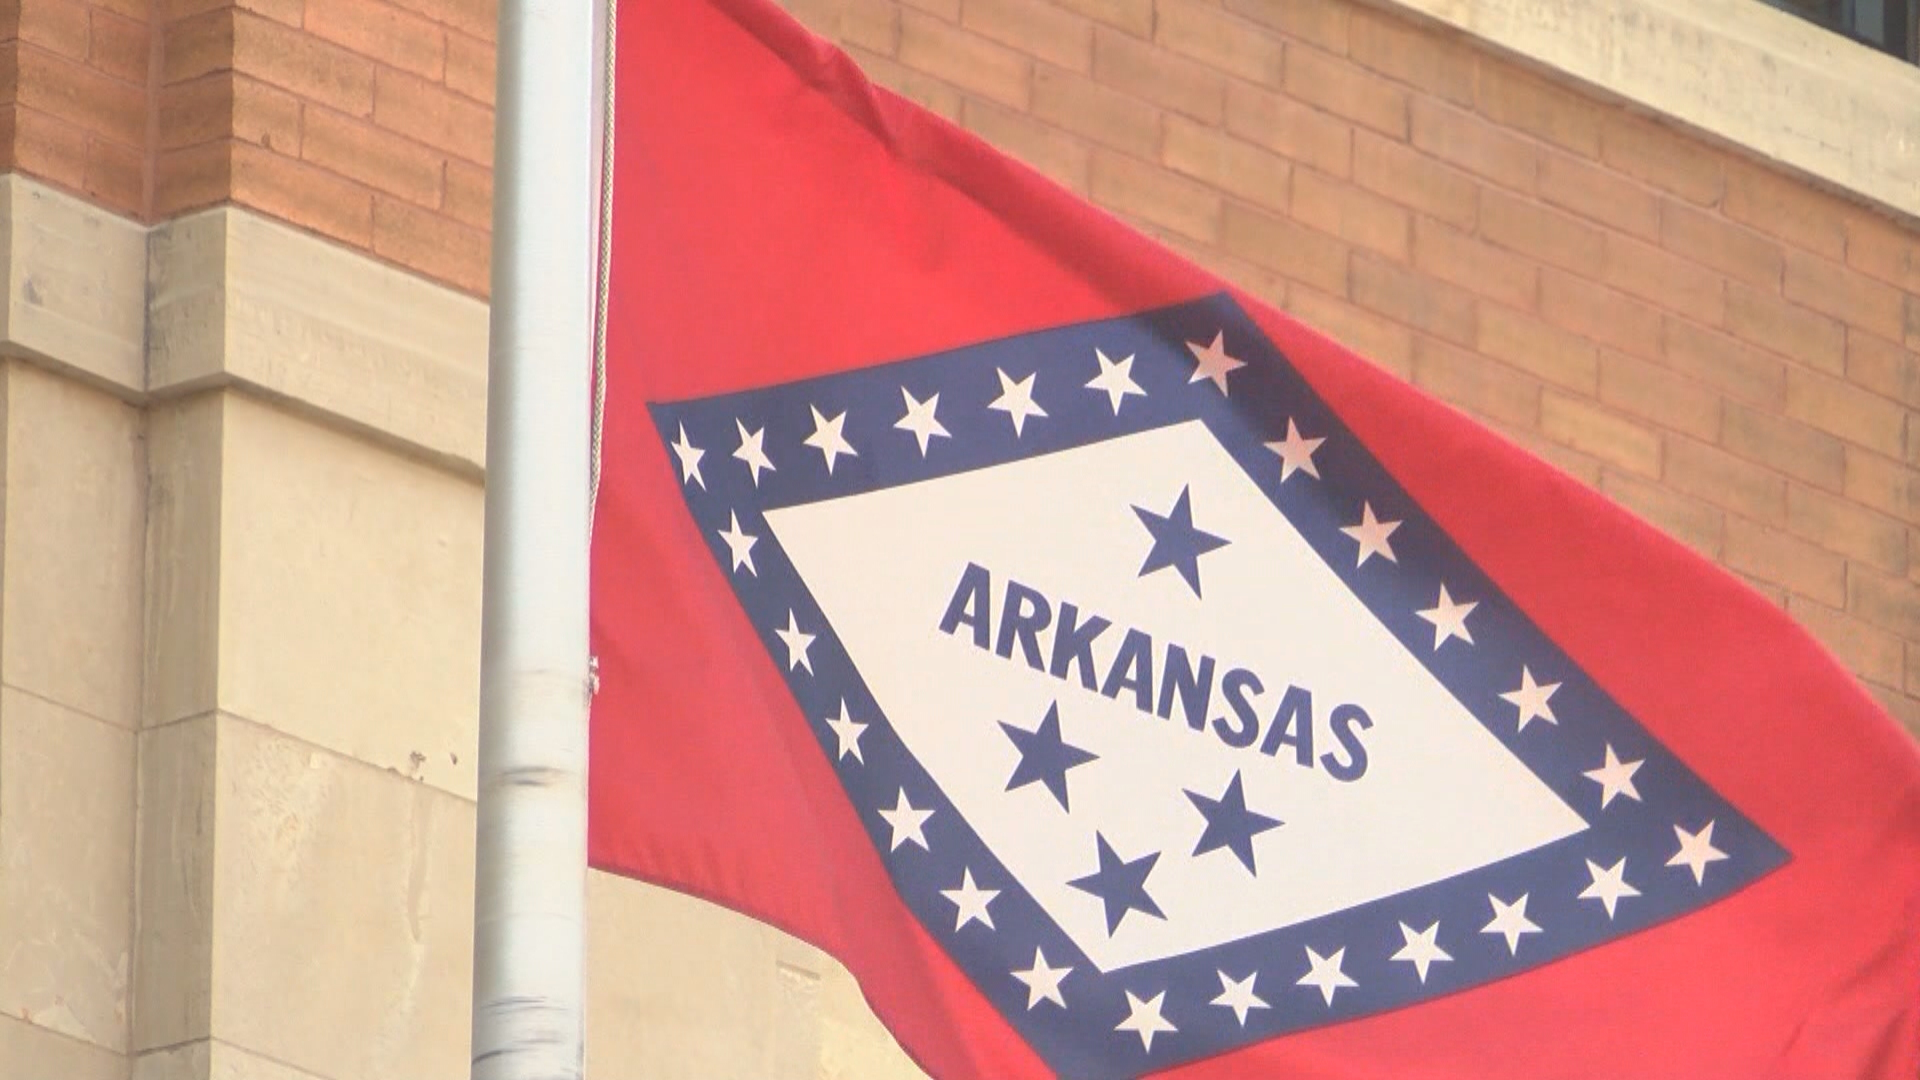 Arkansas Flag_1550268010277.jpg.jpg